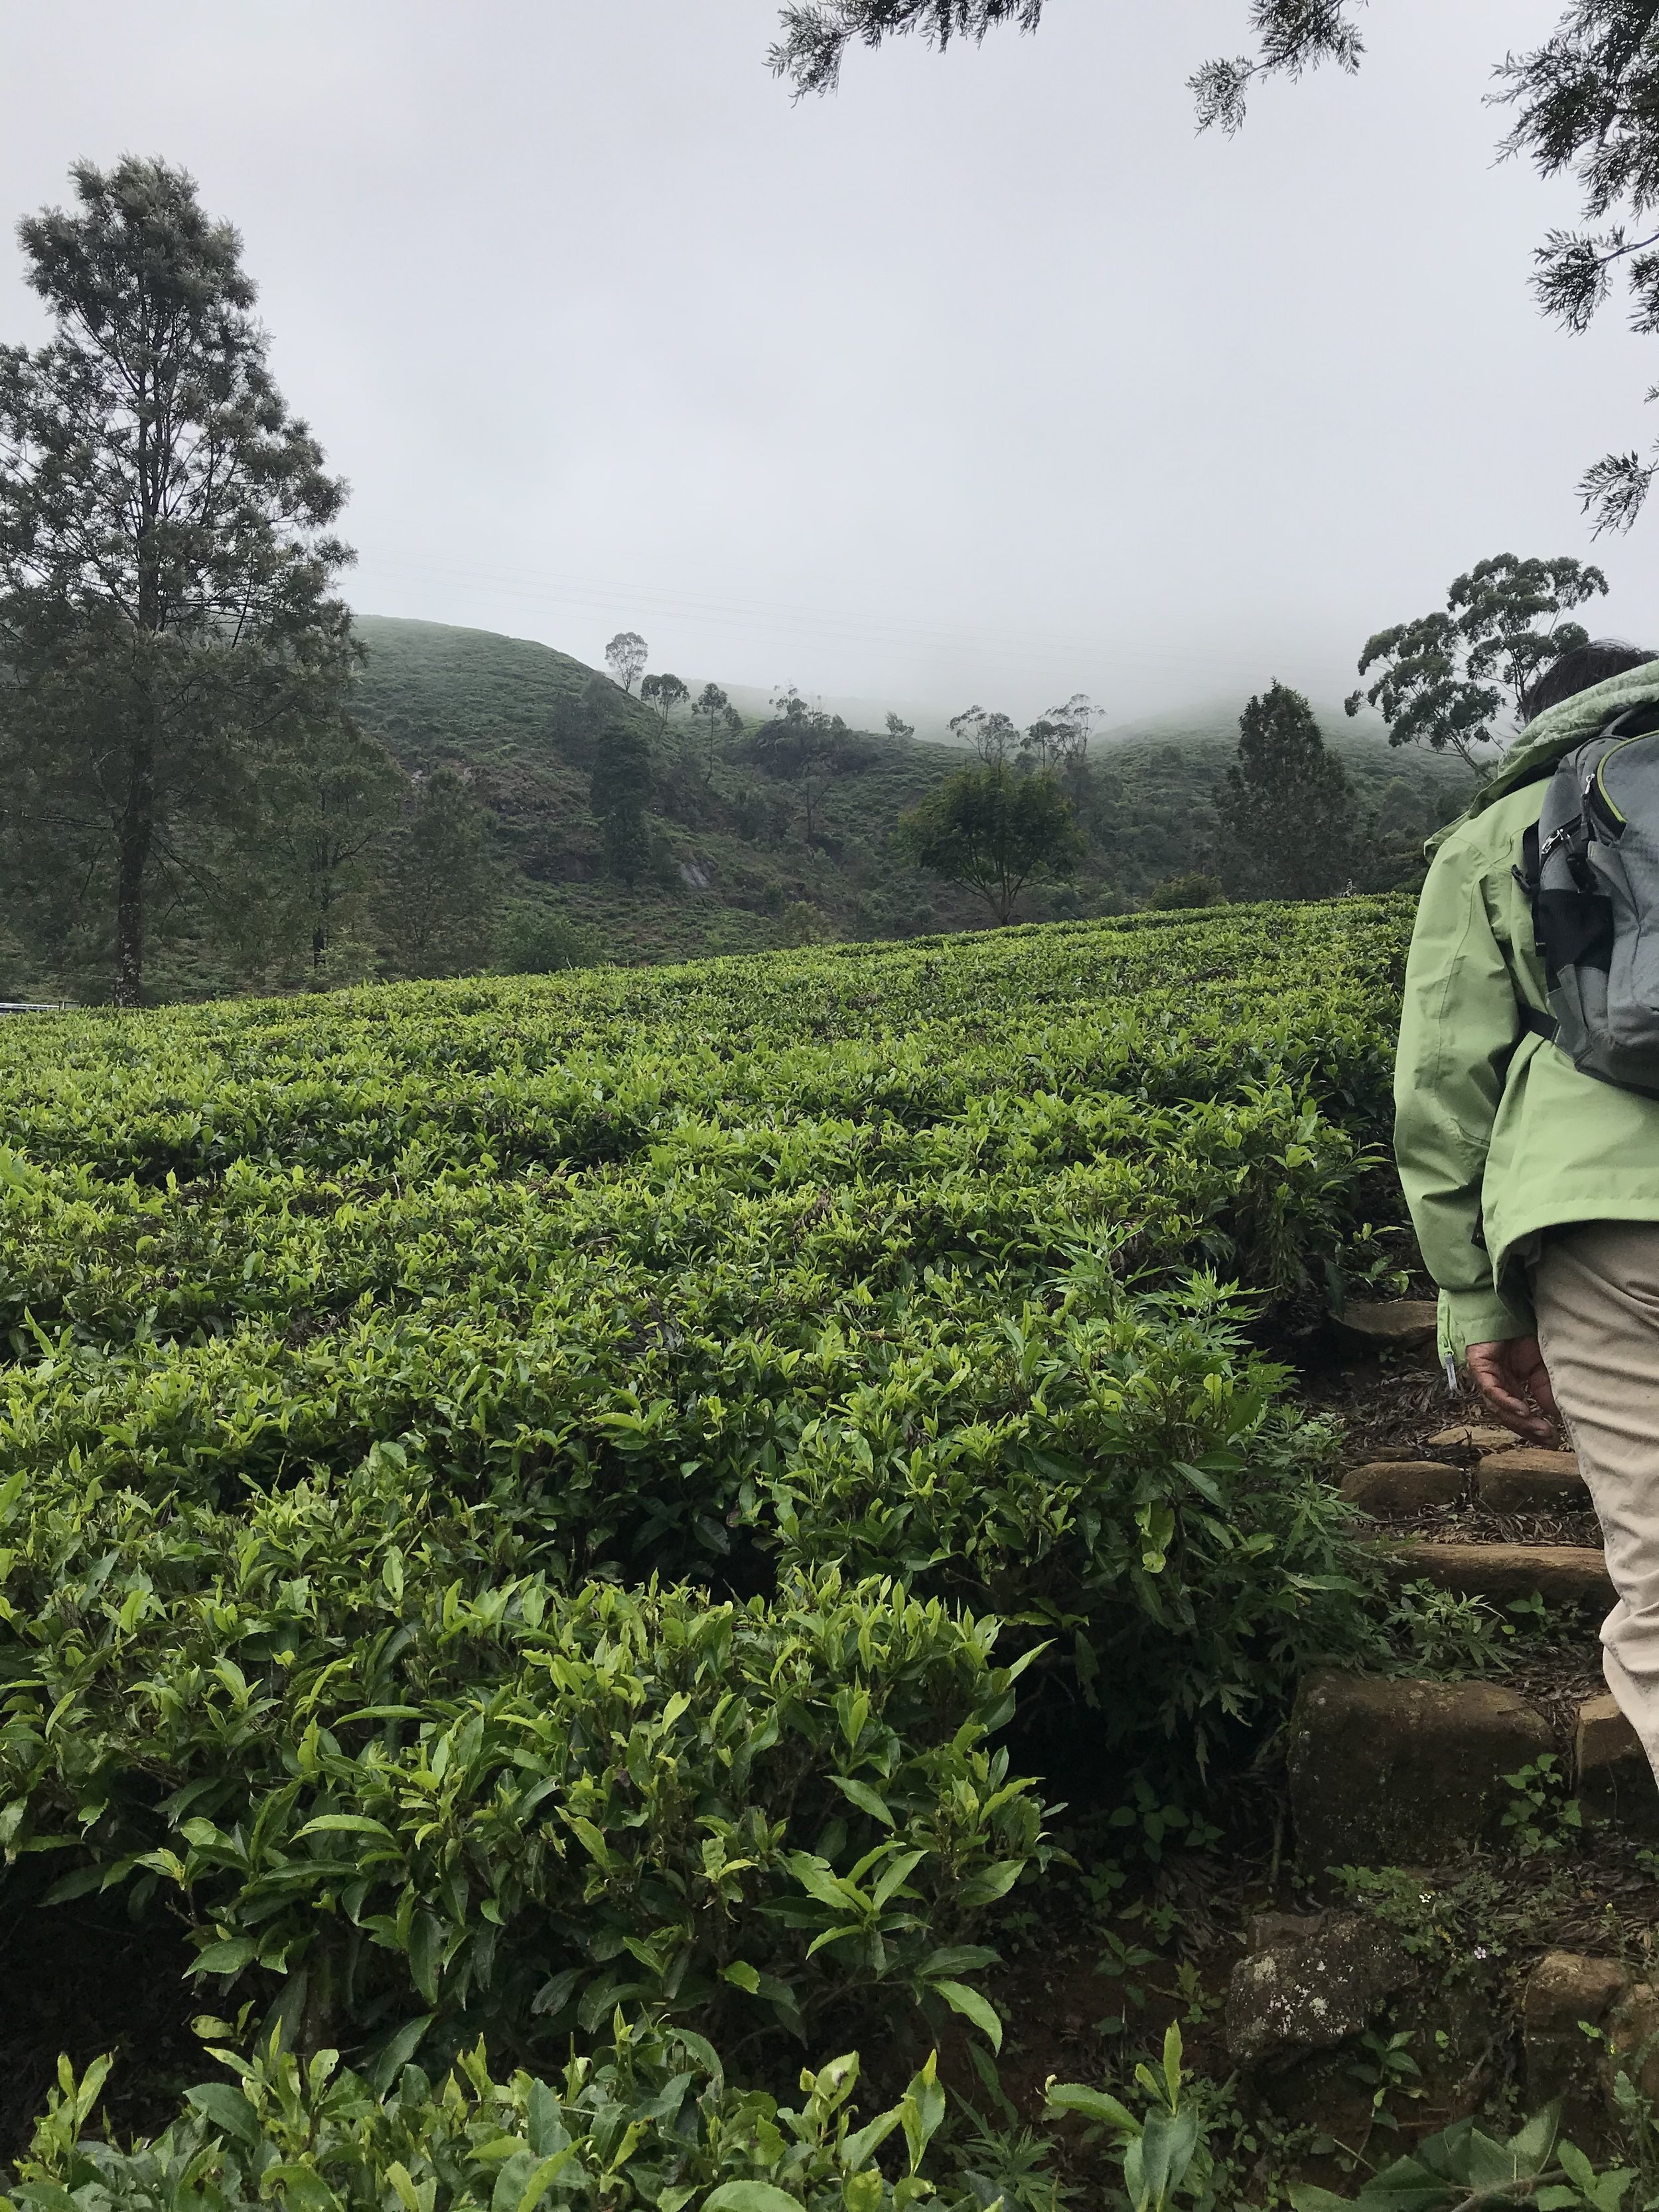 My host in Nuwara Eliya, Lal, was a master naturalist. He took me hiking around town, through the tea fields and rain forests.